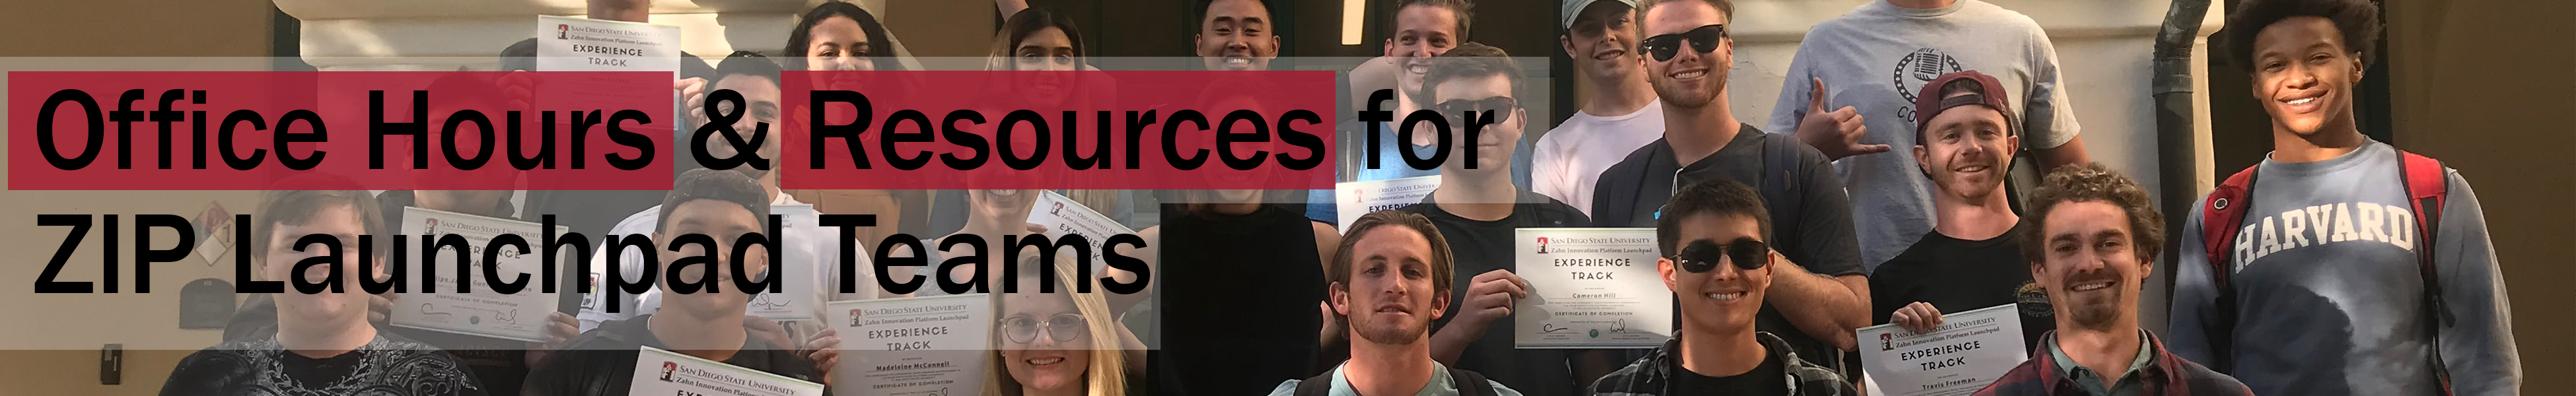 "Image that says ""Office Hours and Resouces for Active ZIP Launchpad Teams"" with a picture of students behind"